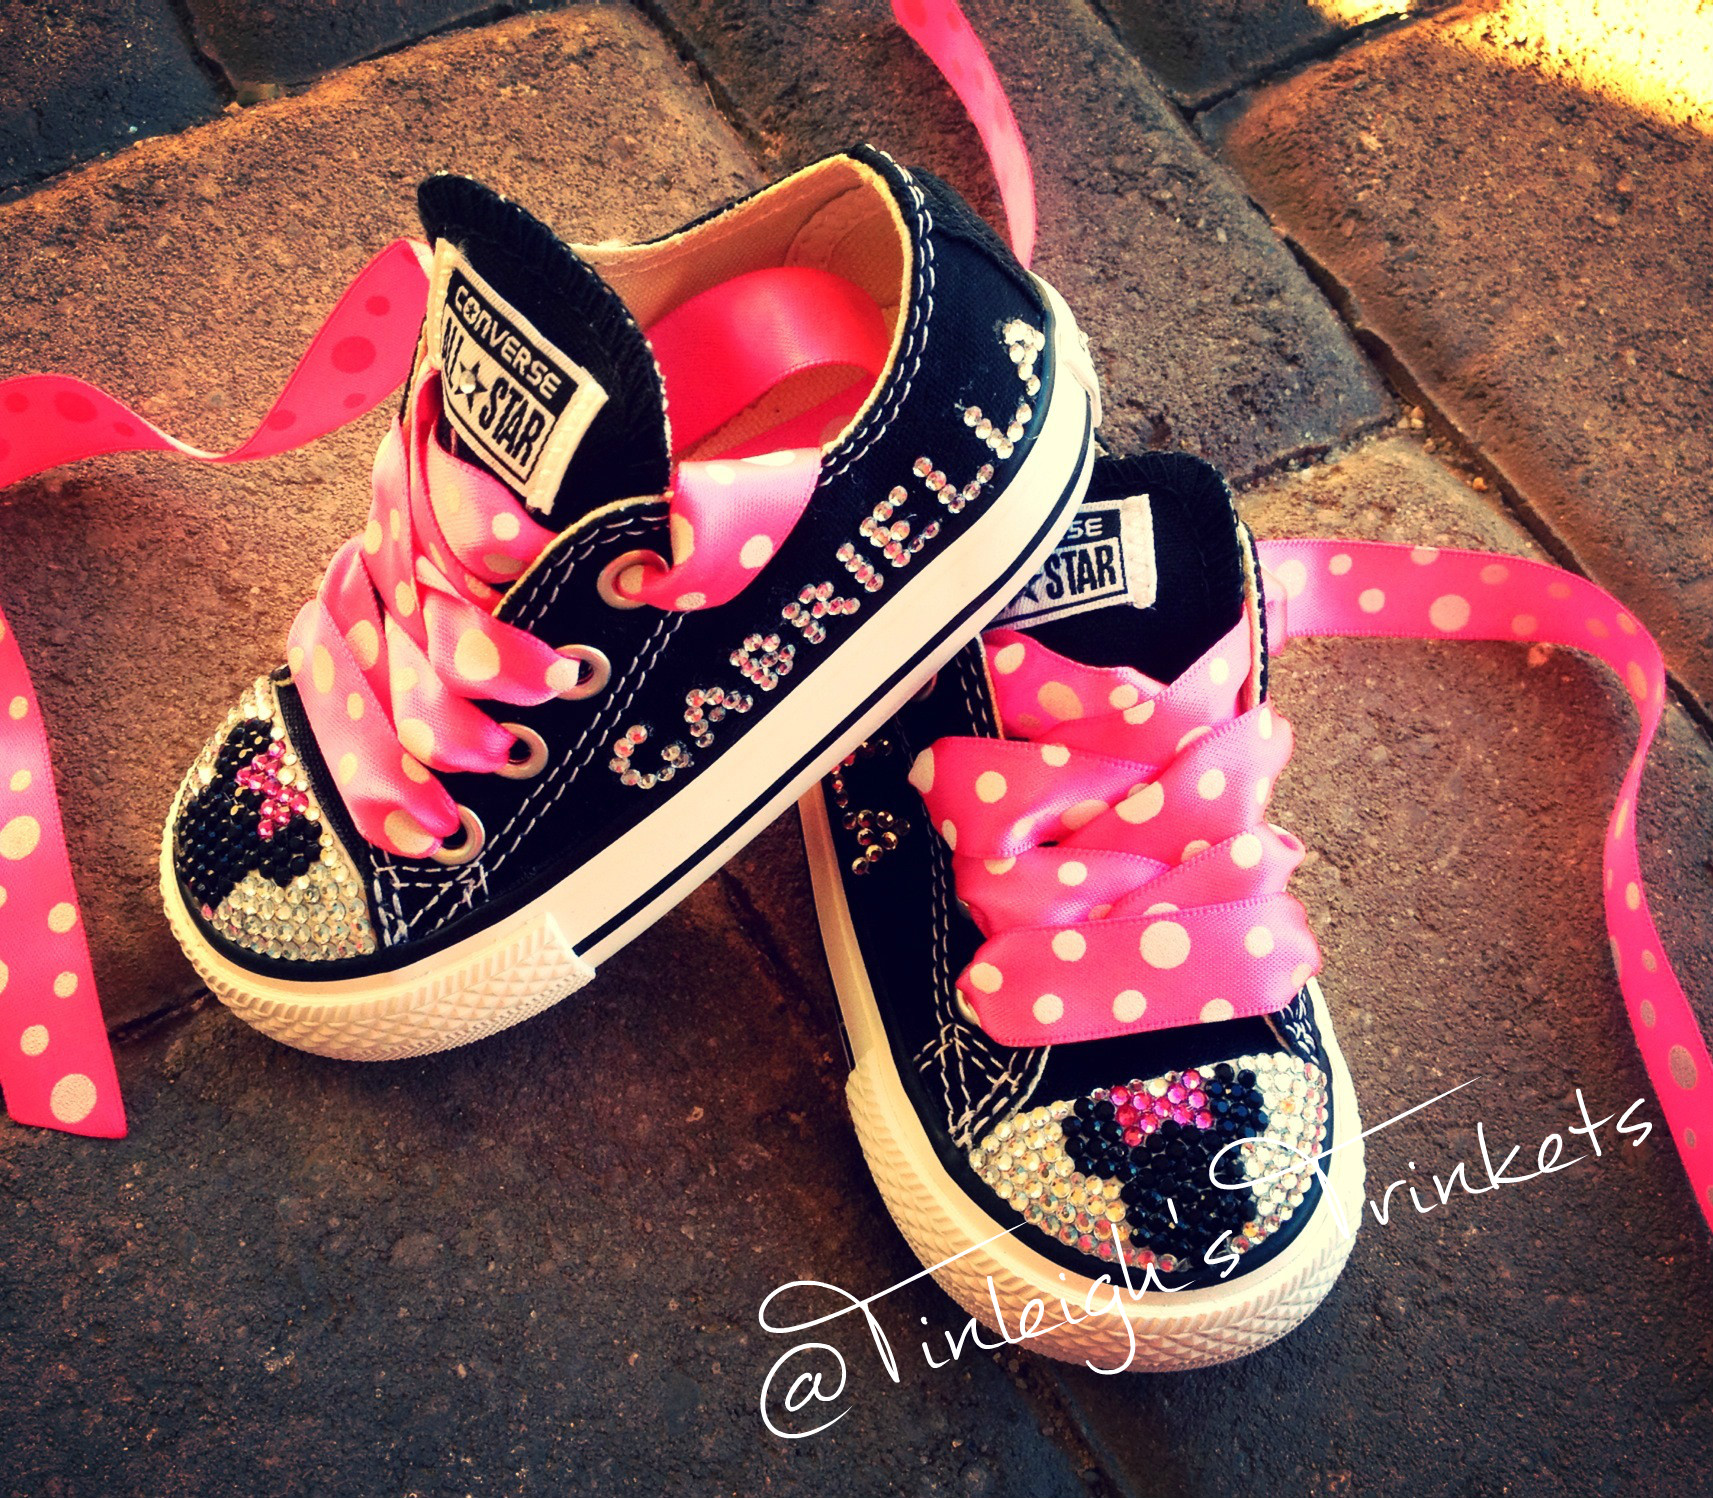 How To Glue Converse Shoes